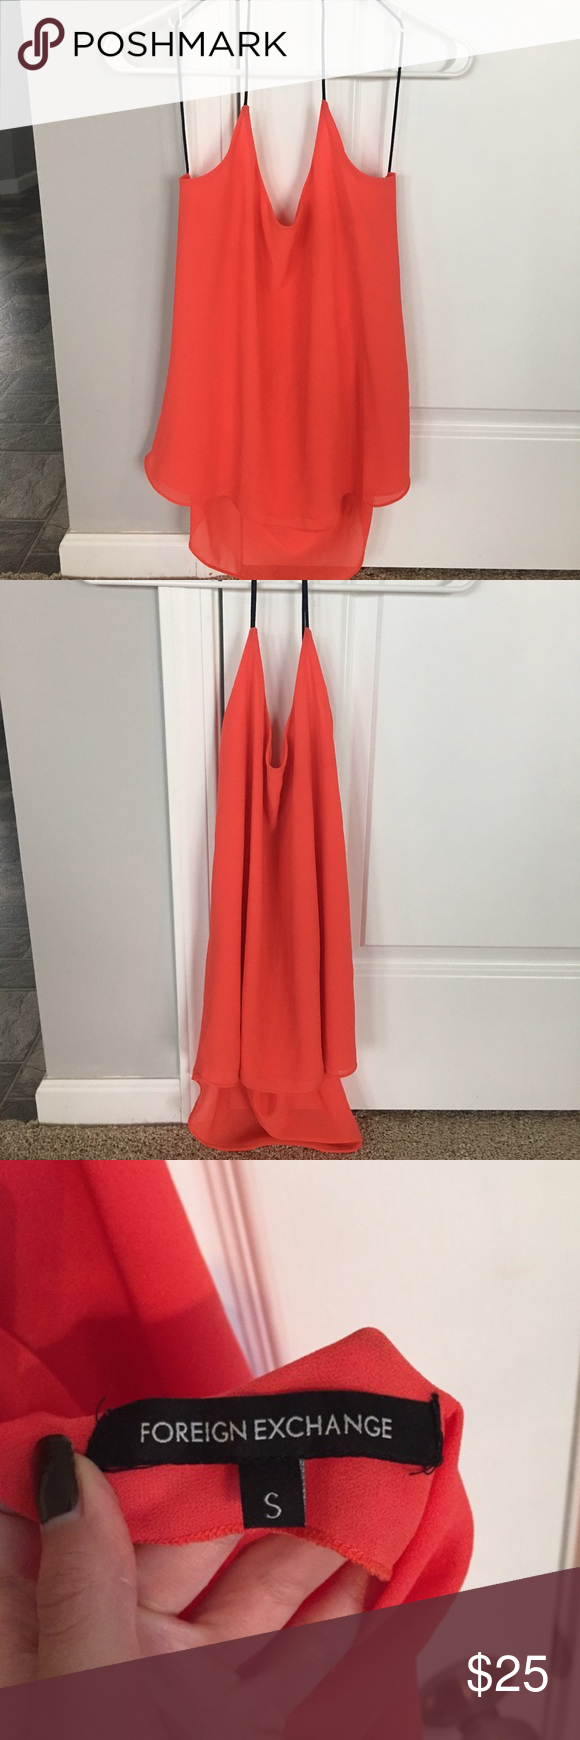 NWOT Sexy red Foreign Exchange top New without tag. Basically brand-new. Never worn. No flaws or imperfections. Very sexy red tank top with black skinny straps. A flowy piece. This would be great for date night! Foreign Exchange Tops Tank Tops